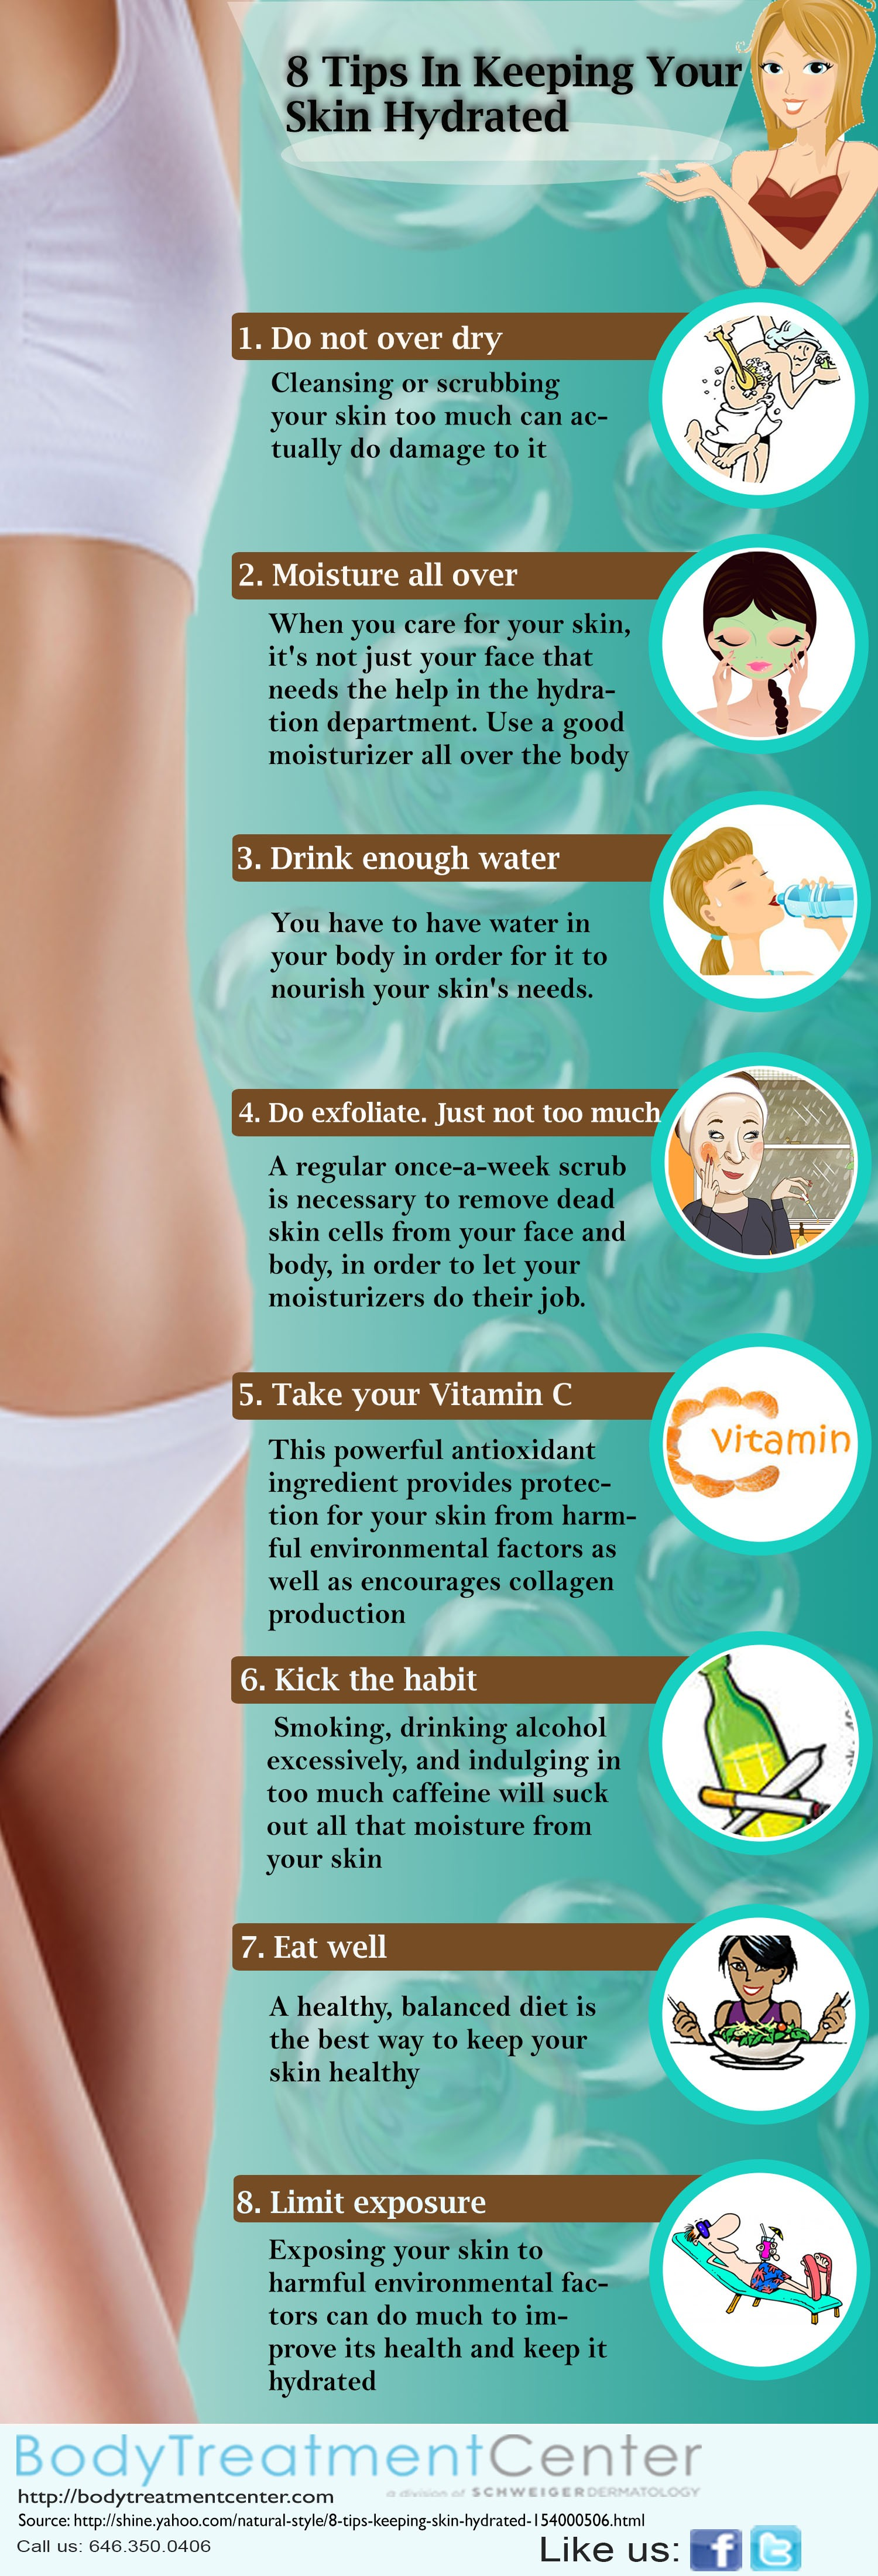 9 Ways to Get Great Skin Infographic